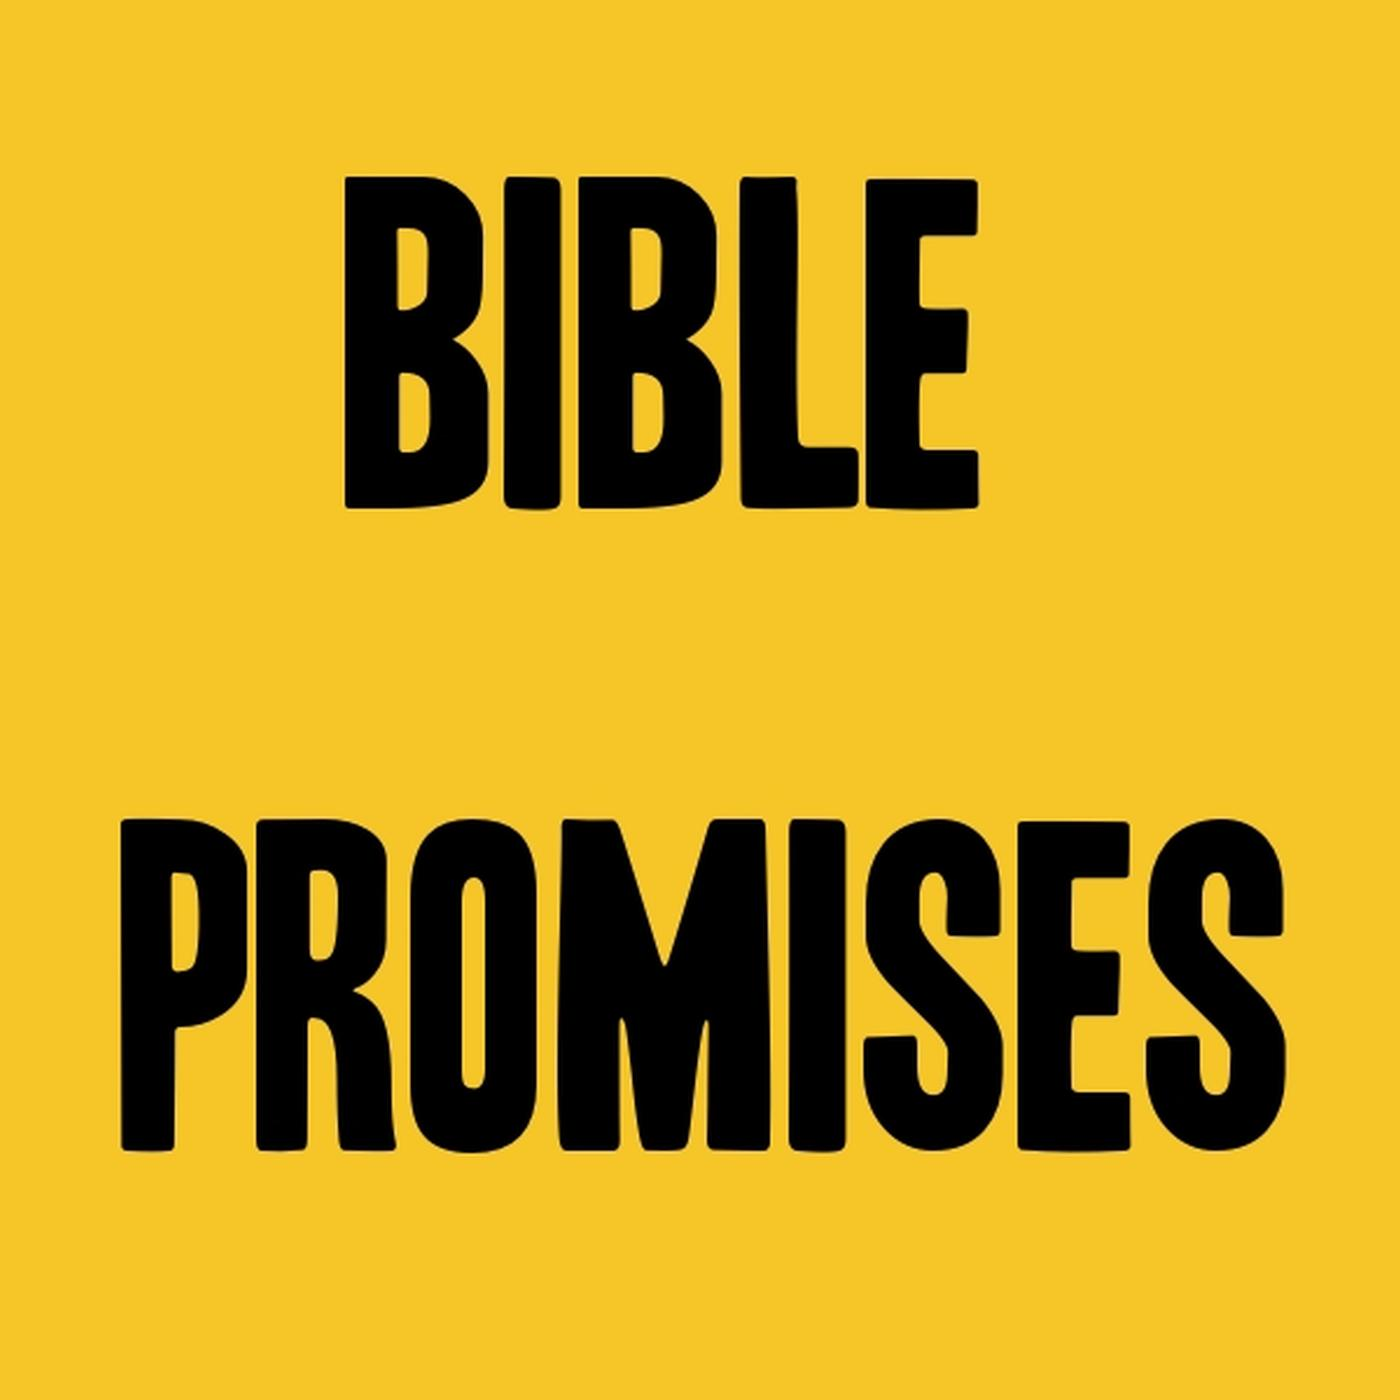 Bible promises – Songs of Hope